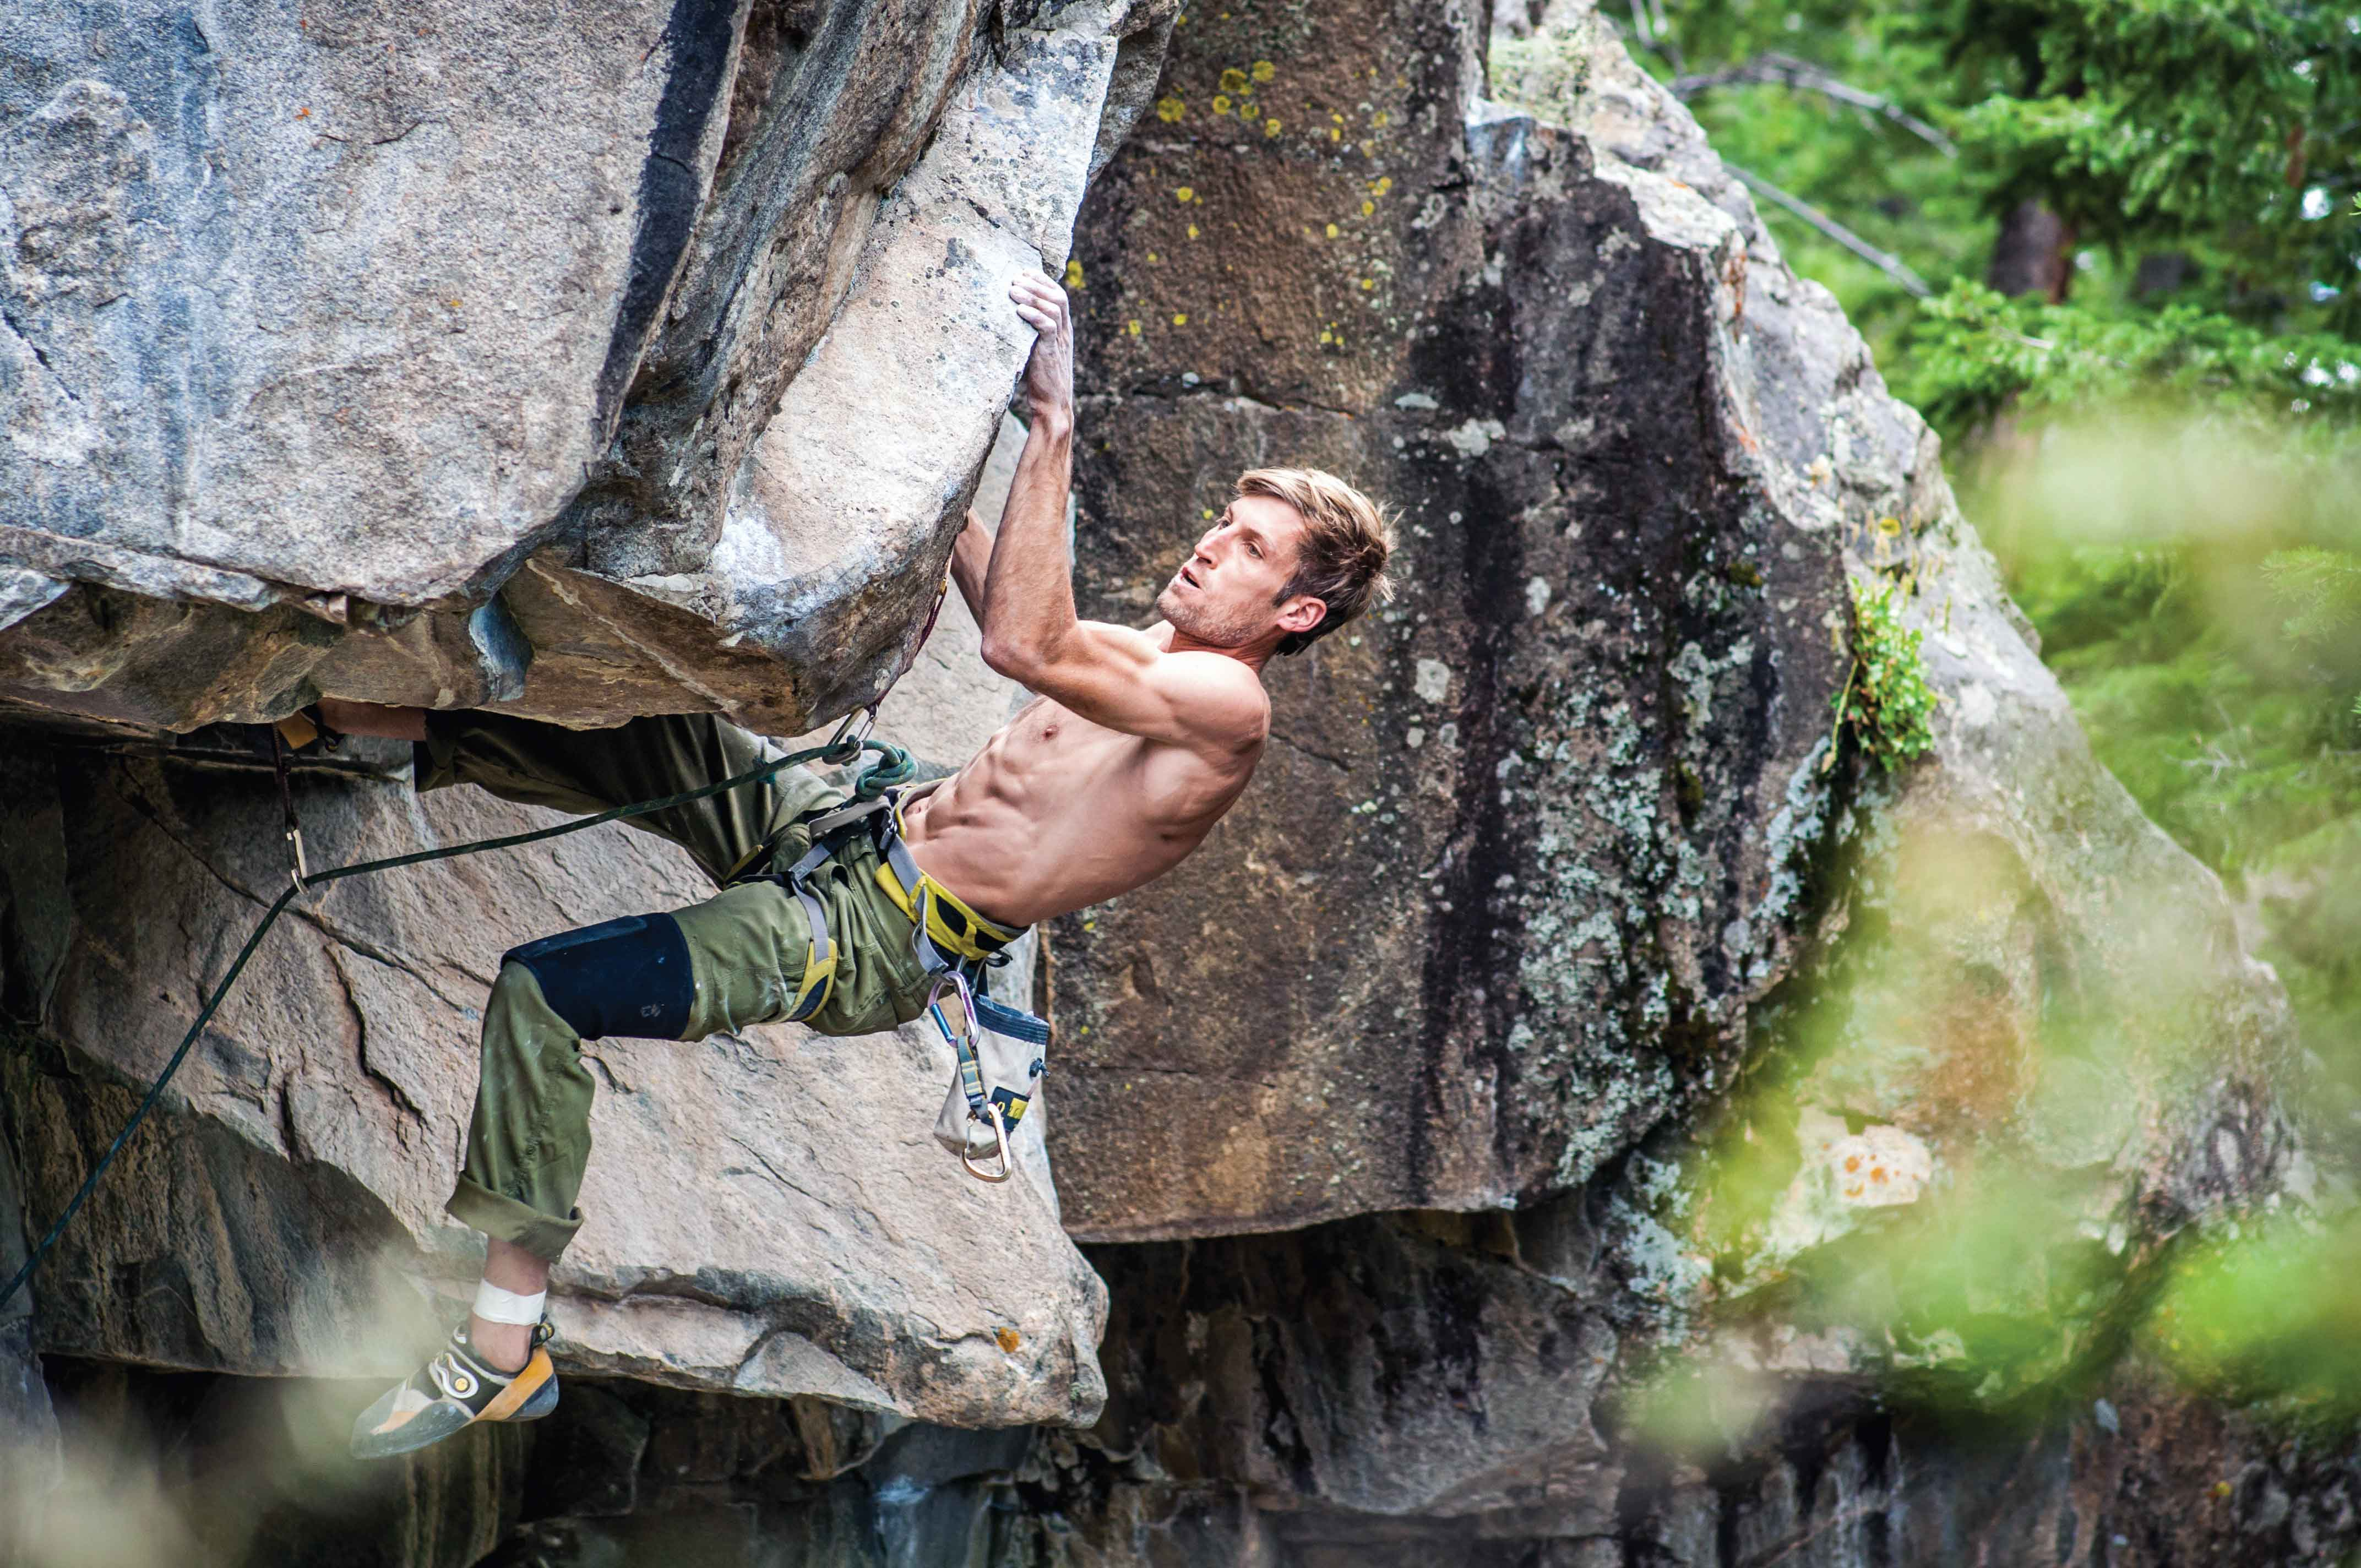 The author on the compression testpiece Sloth (5.13b) at the Jungle Wall, Poudre Falls. Photo: Andy Cross.